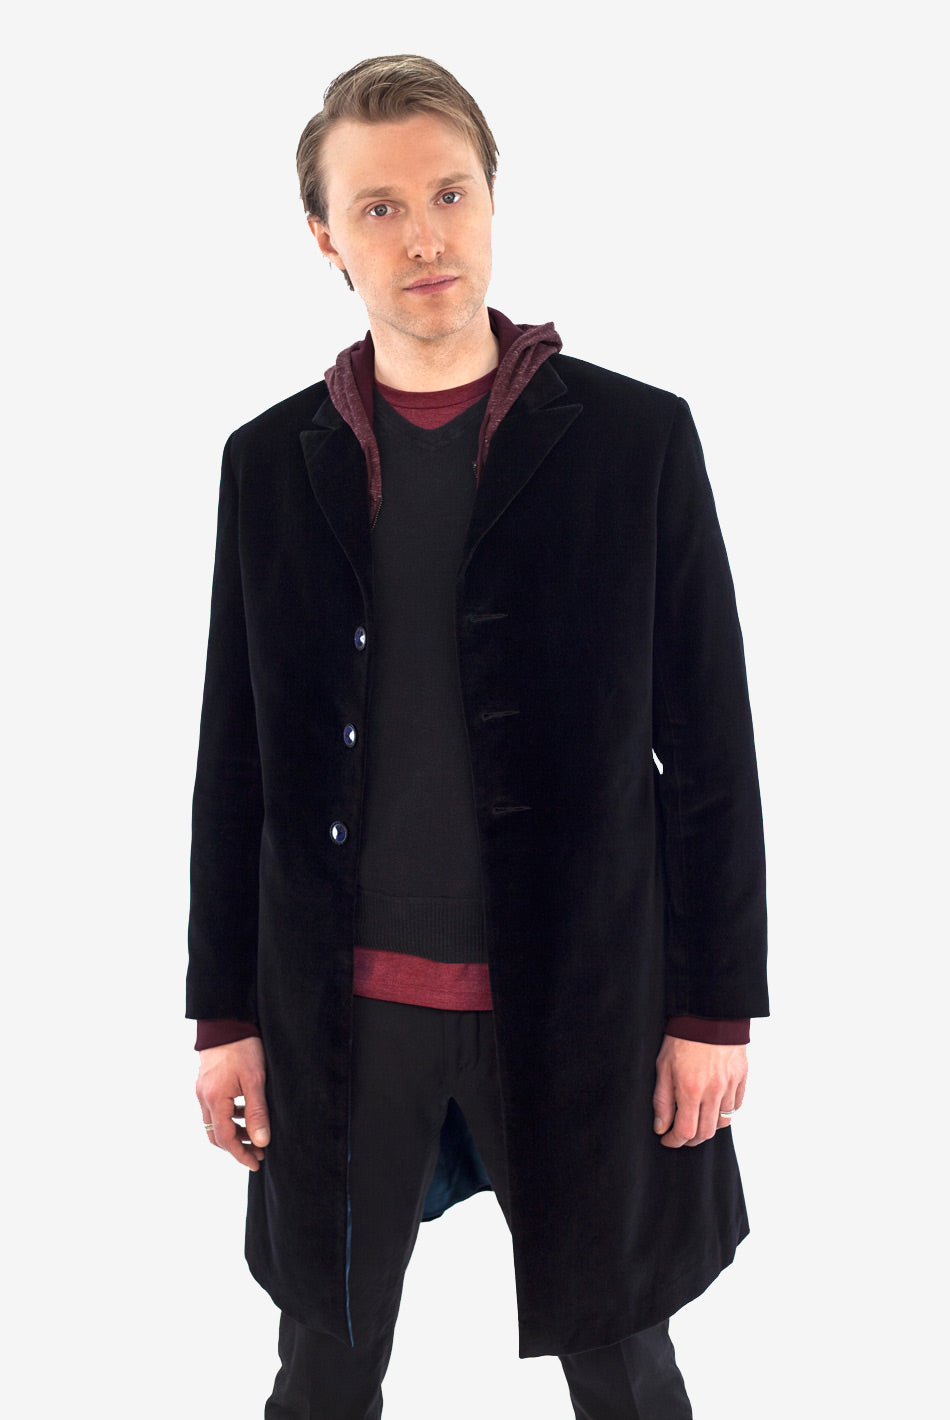 Twelfth Doctor's Black Velvet Frock Coat